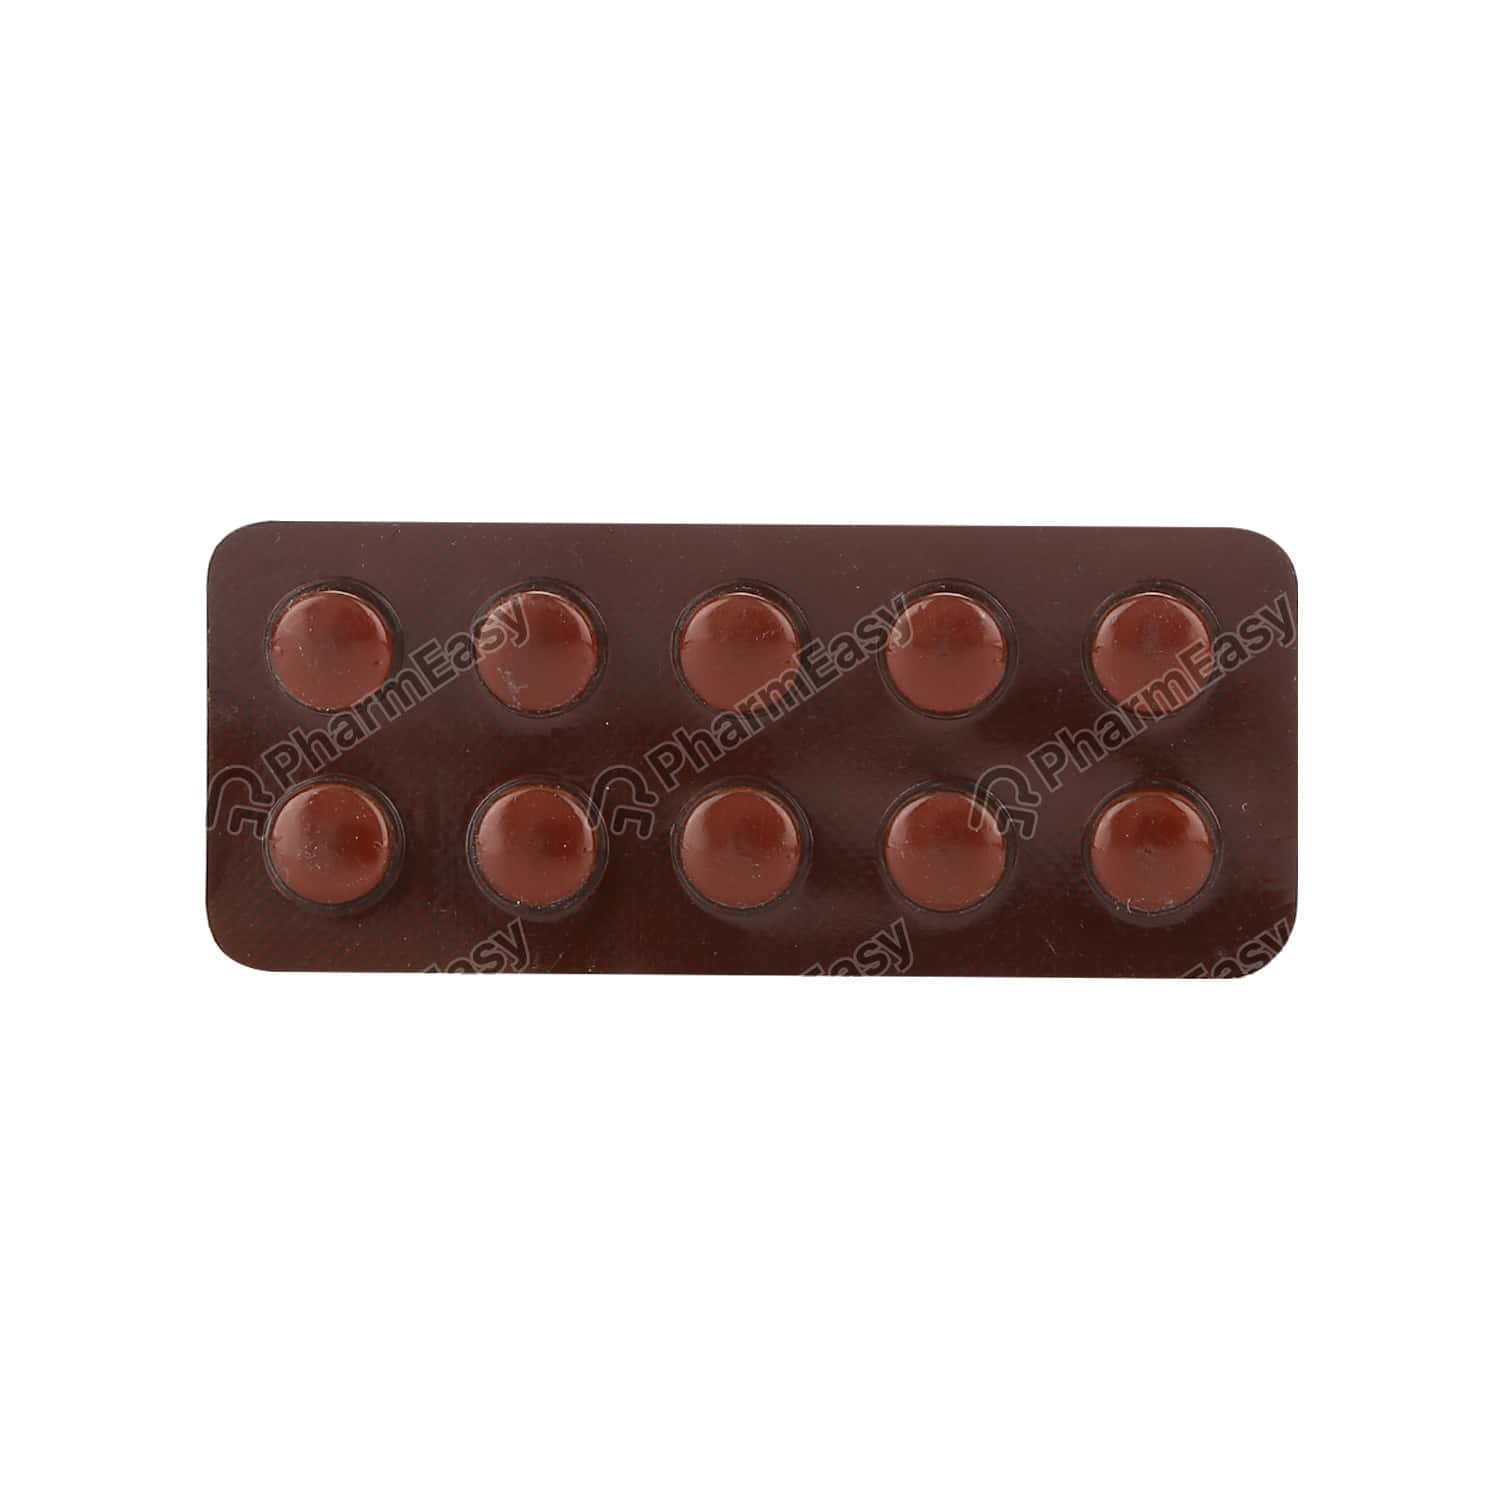 Neorelax A 4mg Tablet